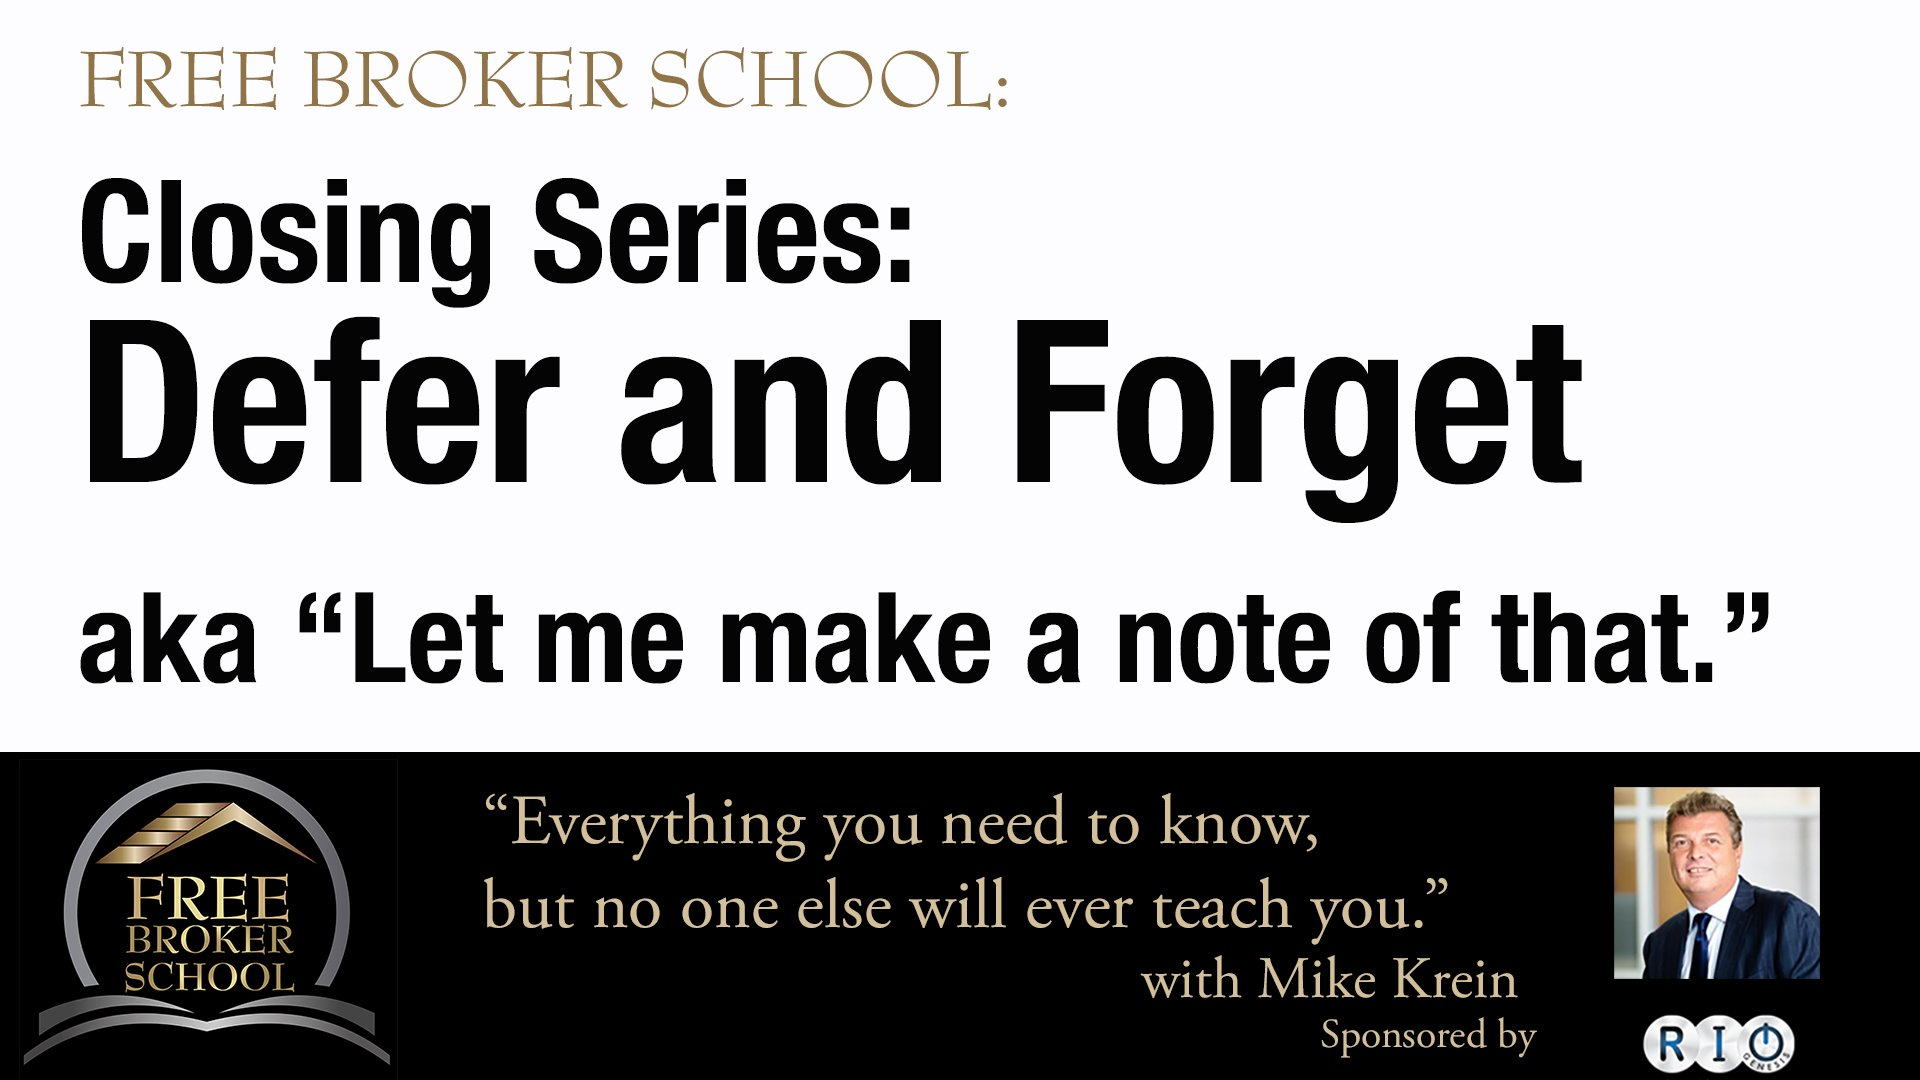 "Free Broker School: Closing Series: Defer and Forget aka ""Let me make a note of that."""